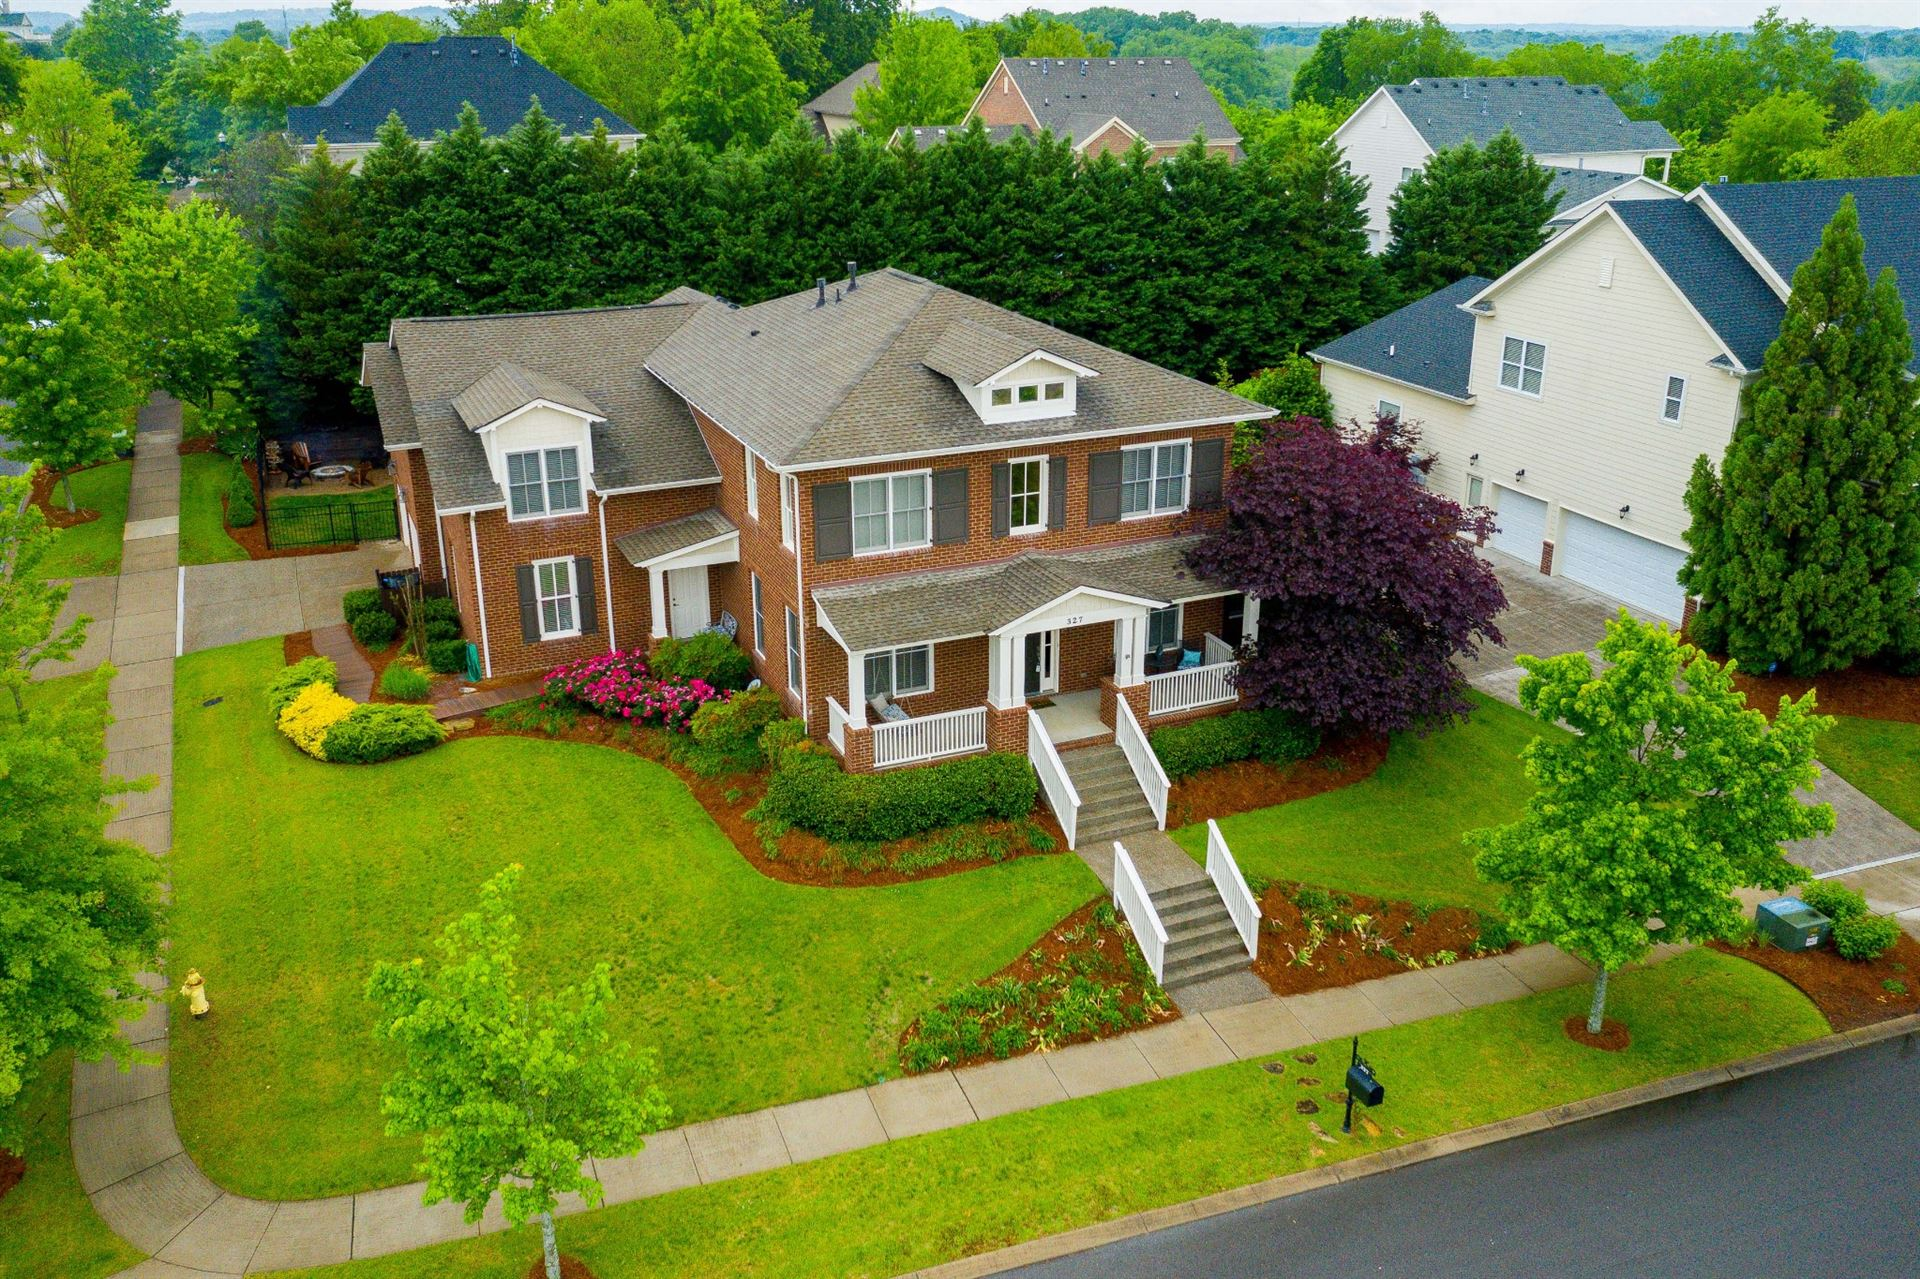 Photo of 327 Wise Rd, Franklin, TN 37064 (MLS # 2242573)